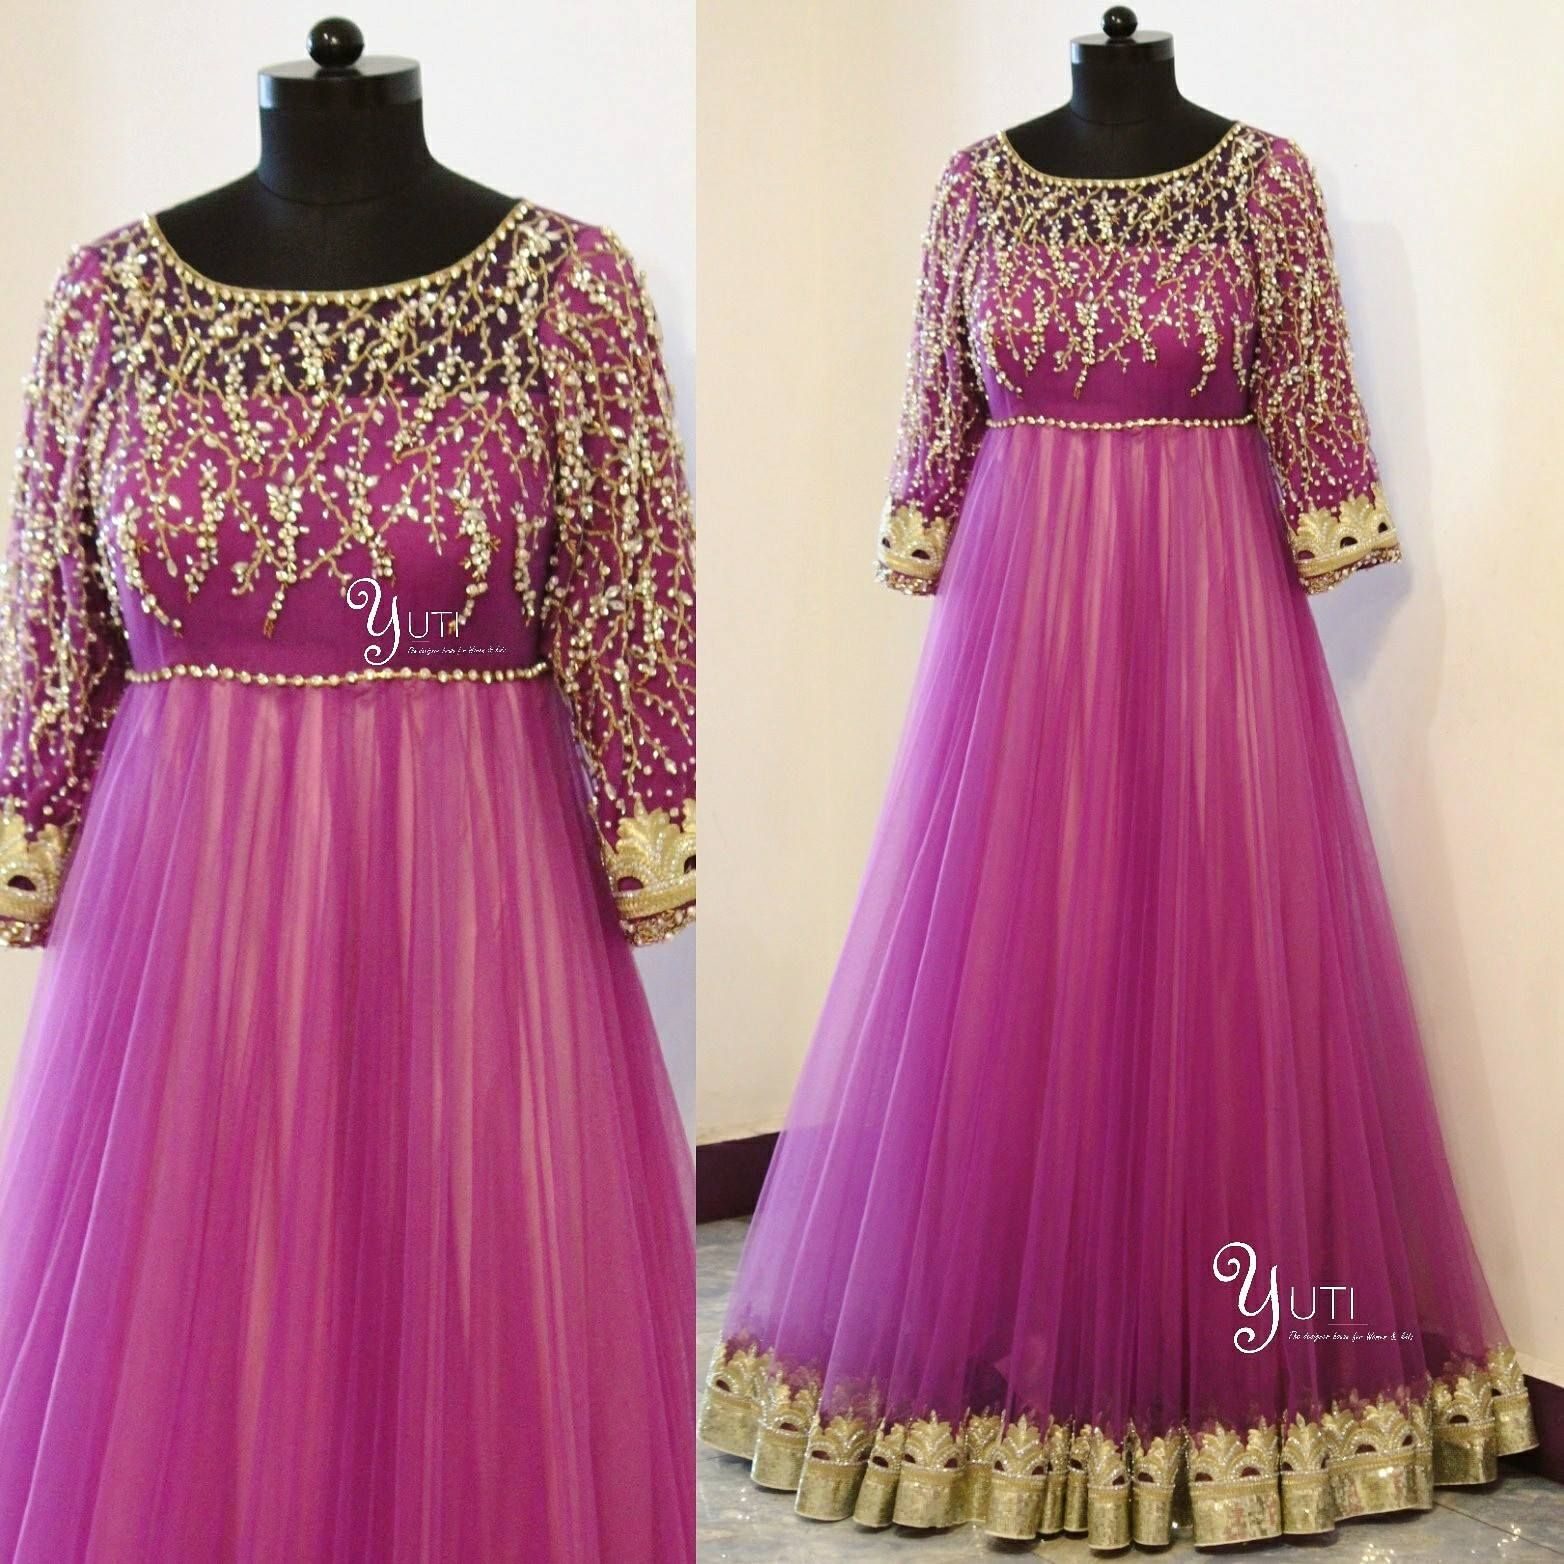 Lavender LOVE!